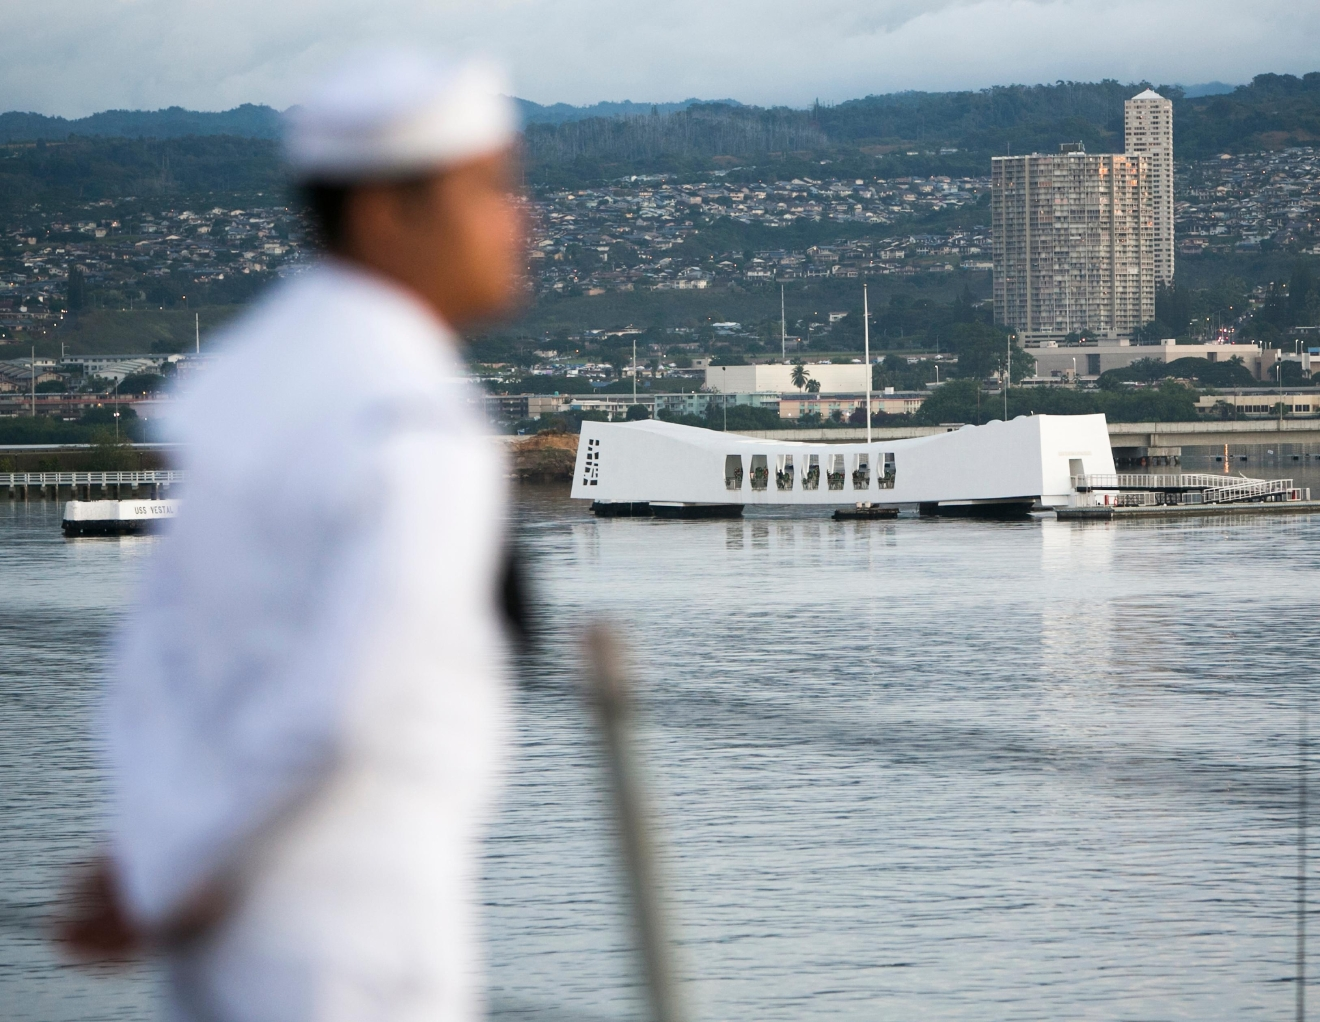 A Navy sailor is seen as the Arleigh Burke-class guided-missile destroyer, the USS Halsey, passes the USS Arizona Memorial, Wednesday, Dec. 7, 2016, in Honolulu. Today marks the 75th anniversary of the surprise Japanese attack on Pearl Harbor initiating the War in the Pacific. (AP Photo/Marco Garcia)